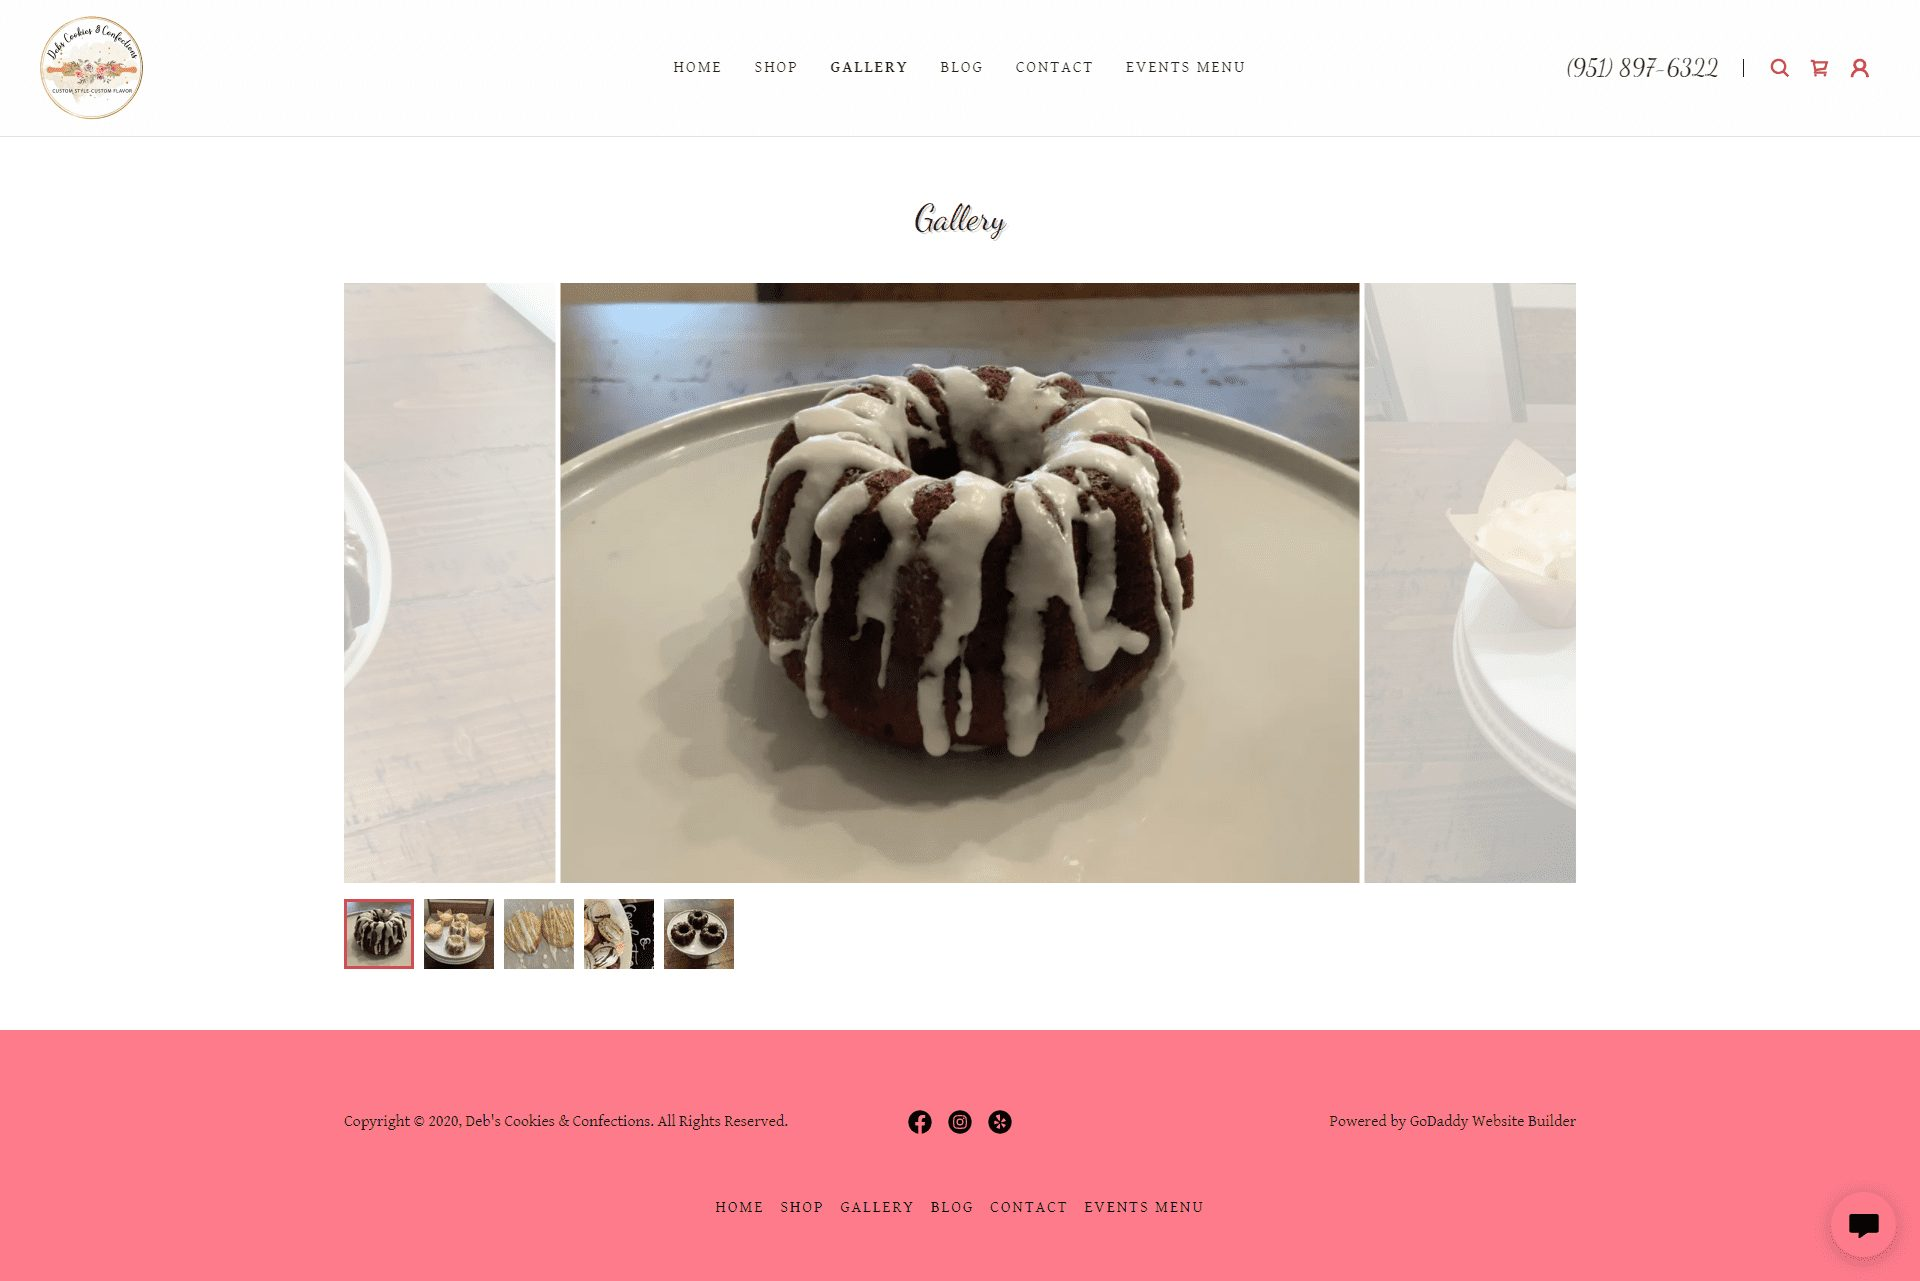 Deb's Cookies & Confections Gallery Page